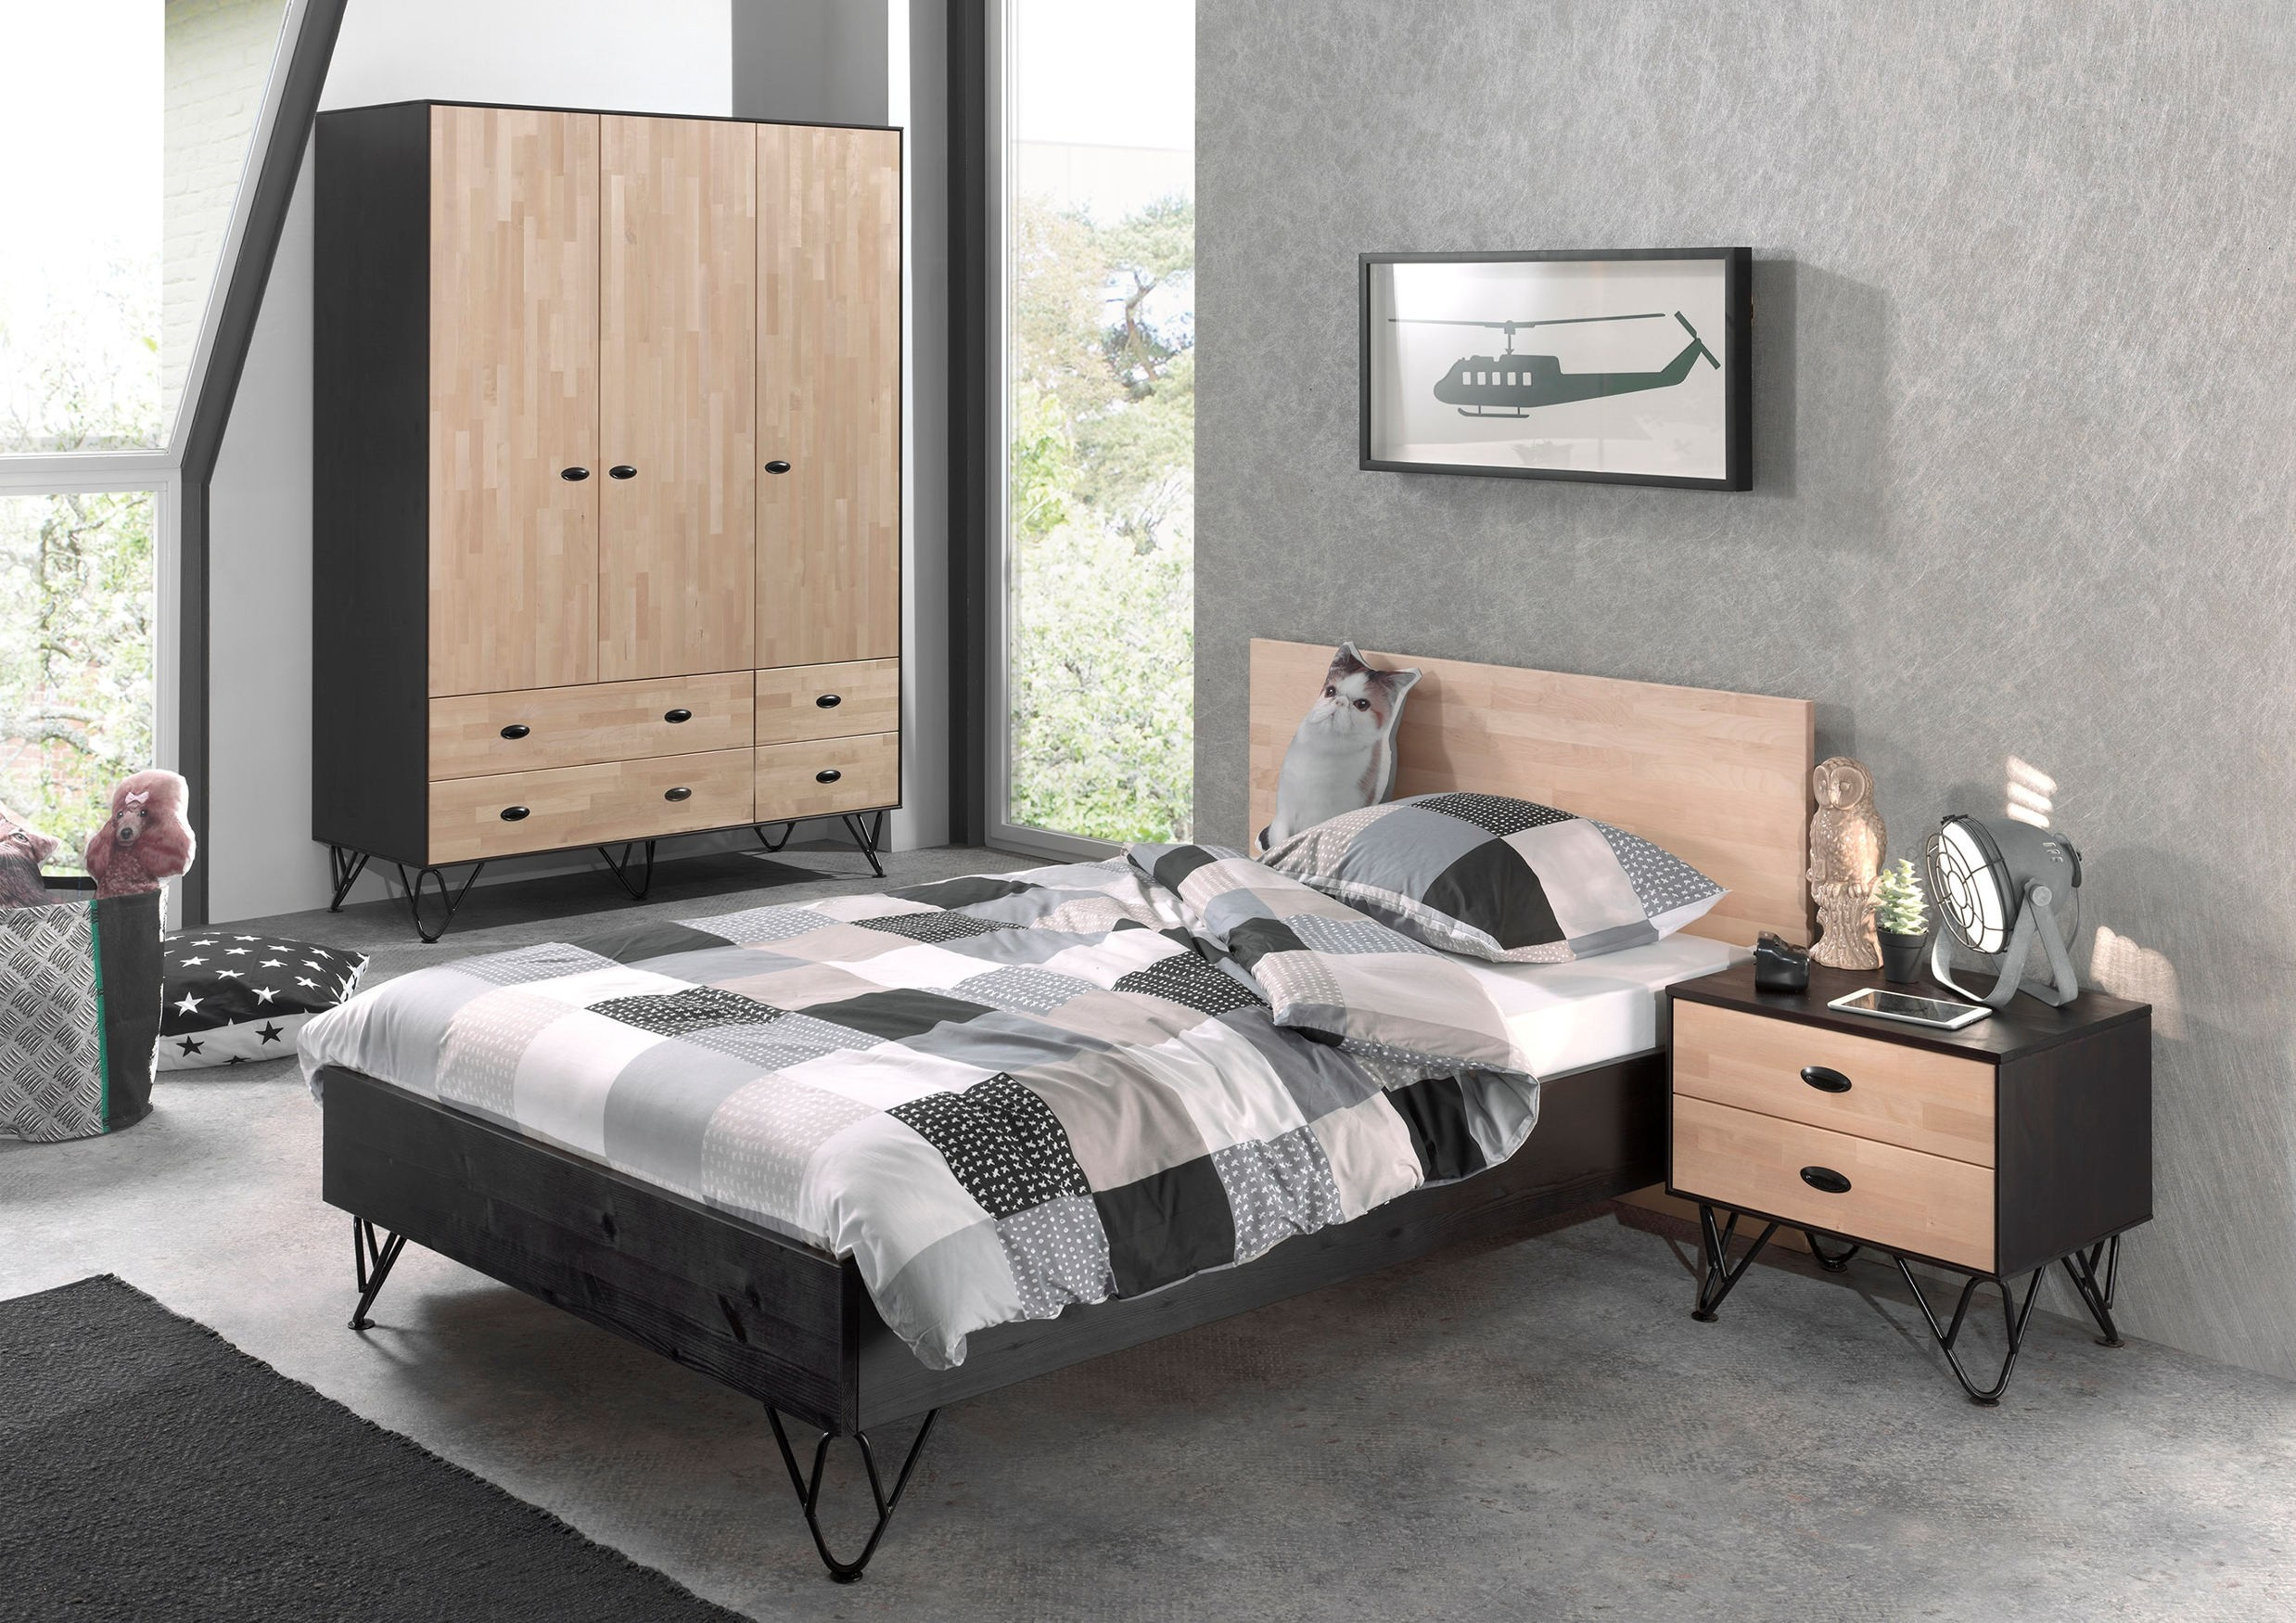 jugendzimmer william bett 120 x 200 cm schrank. Black Bedroom Furniture Sets. Home Design Ideas